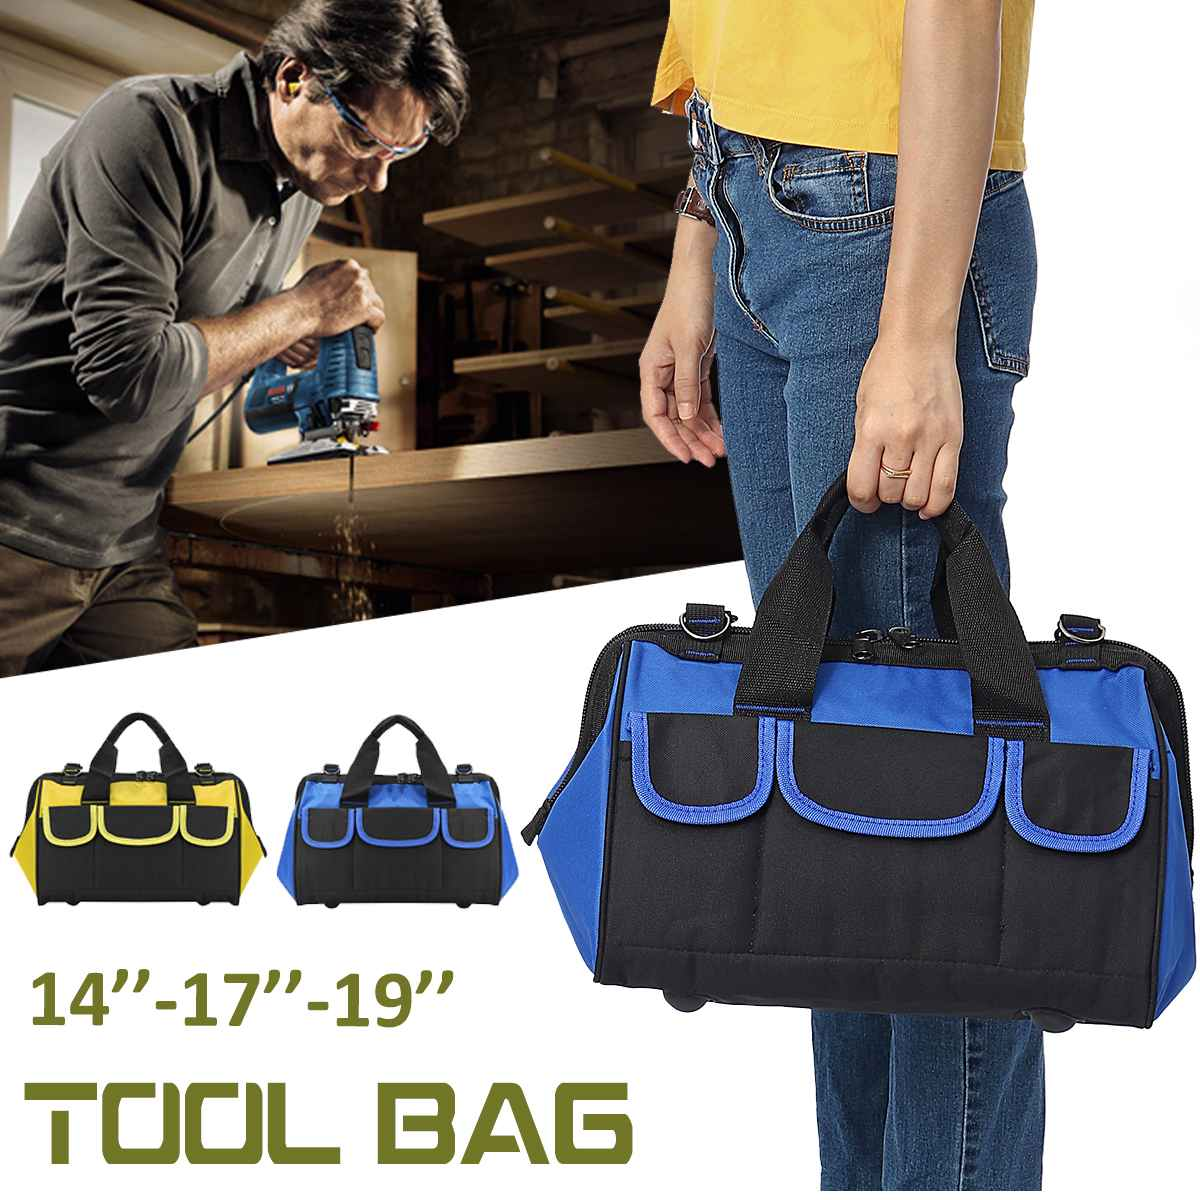 Large Capacity 14-17-19 Inch Tool Bag Storage Sundries Pouches Shoulder Bag Case Handbag Screwdriver Wrench Drill Organizer Bags